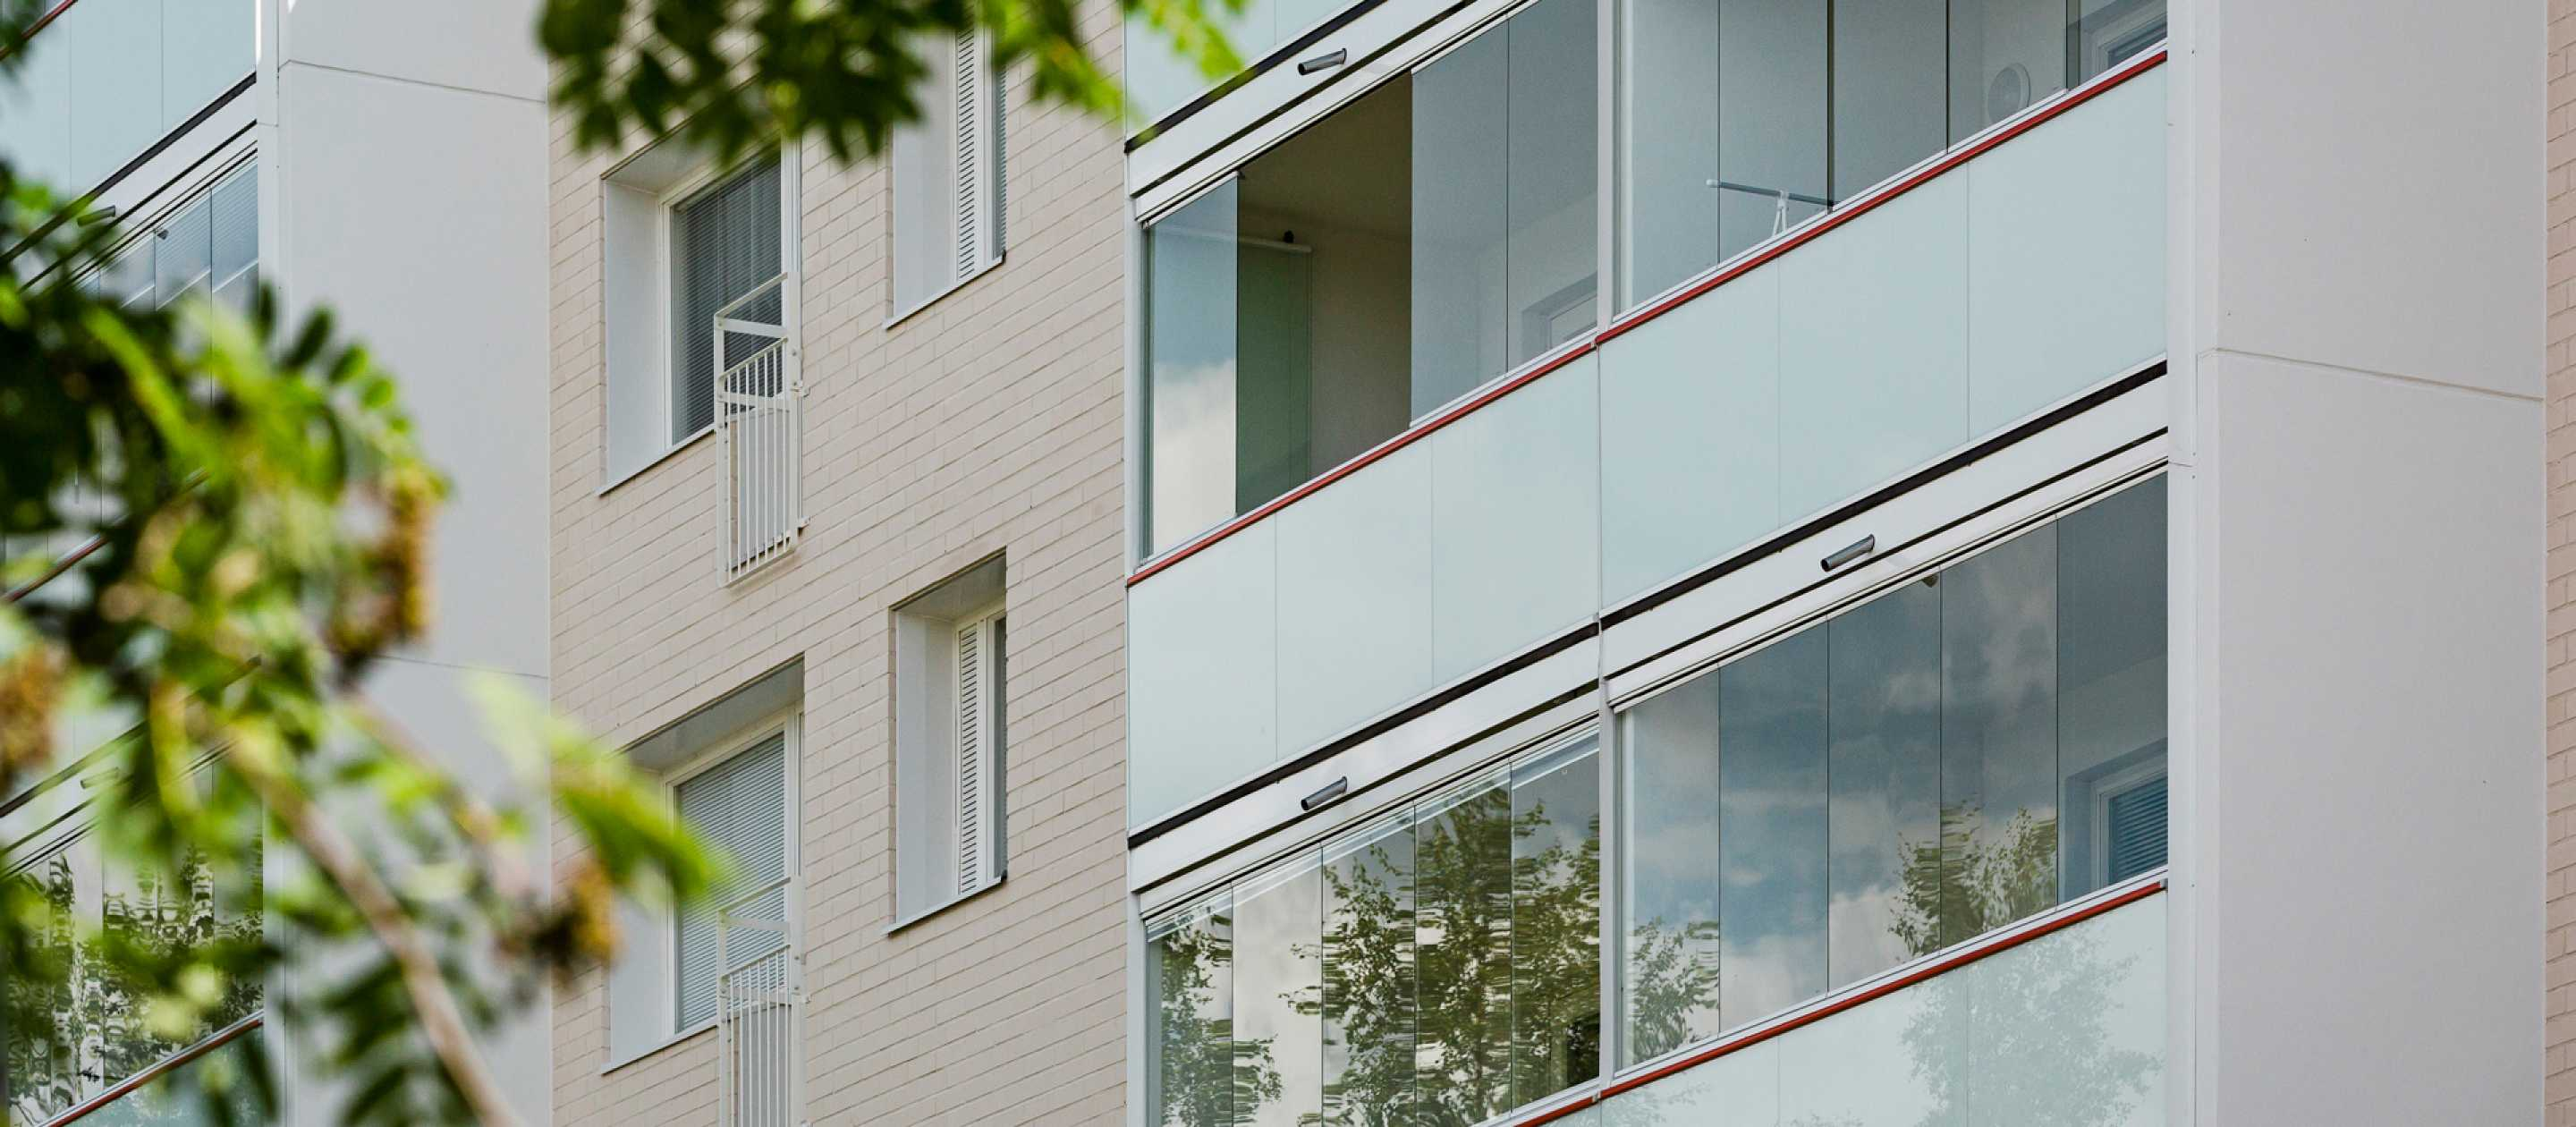 Lumon Canada, Retractable Glass Wall, Balcony Glazing, Energy Efficient, Sustainability